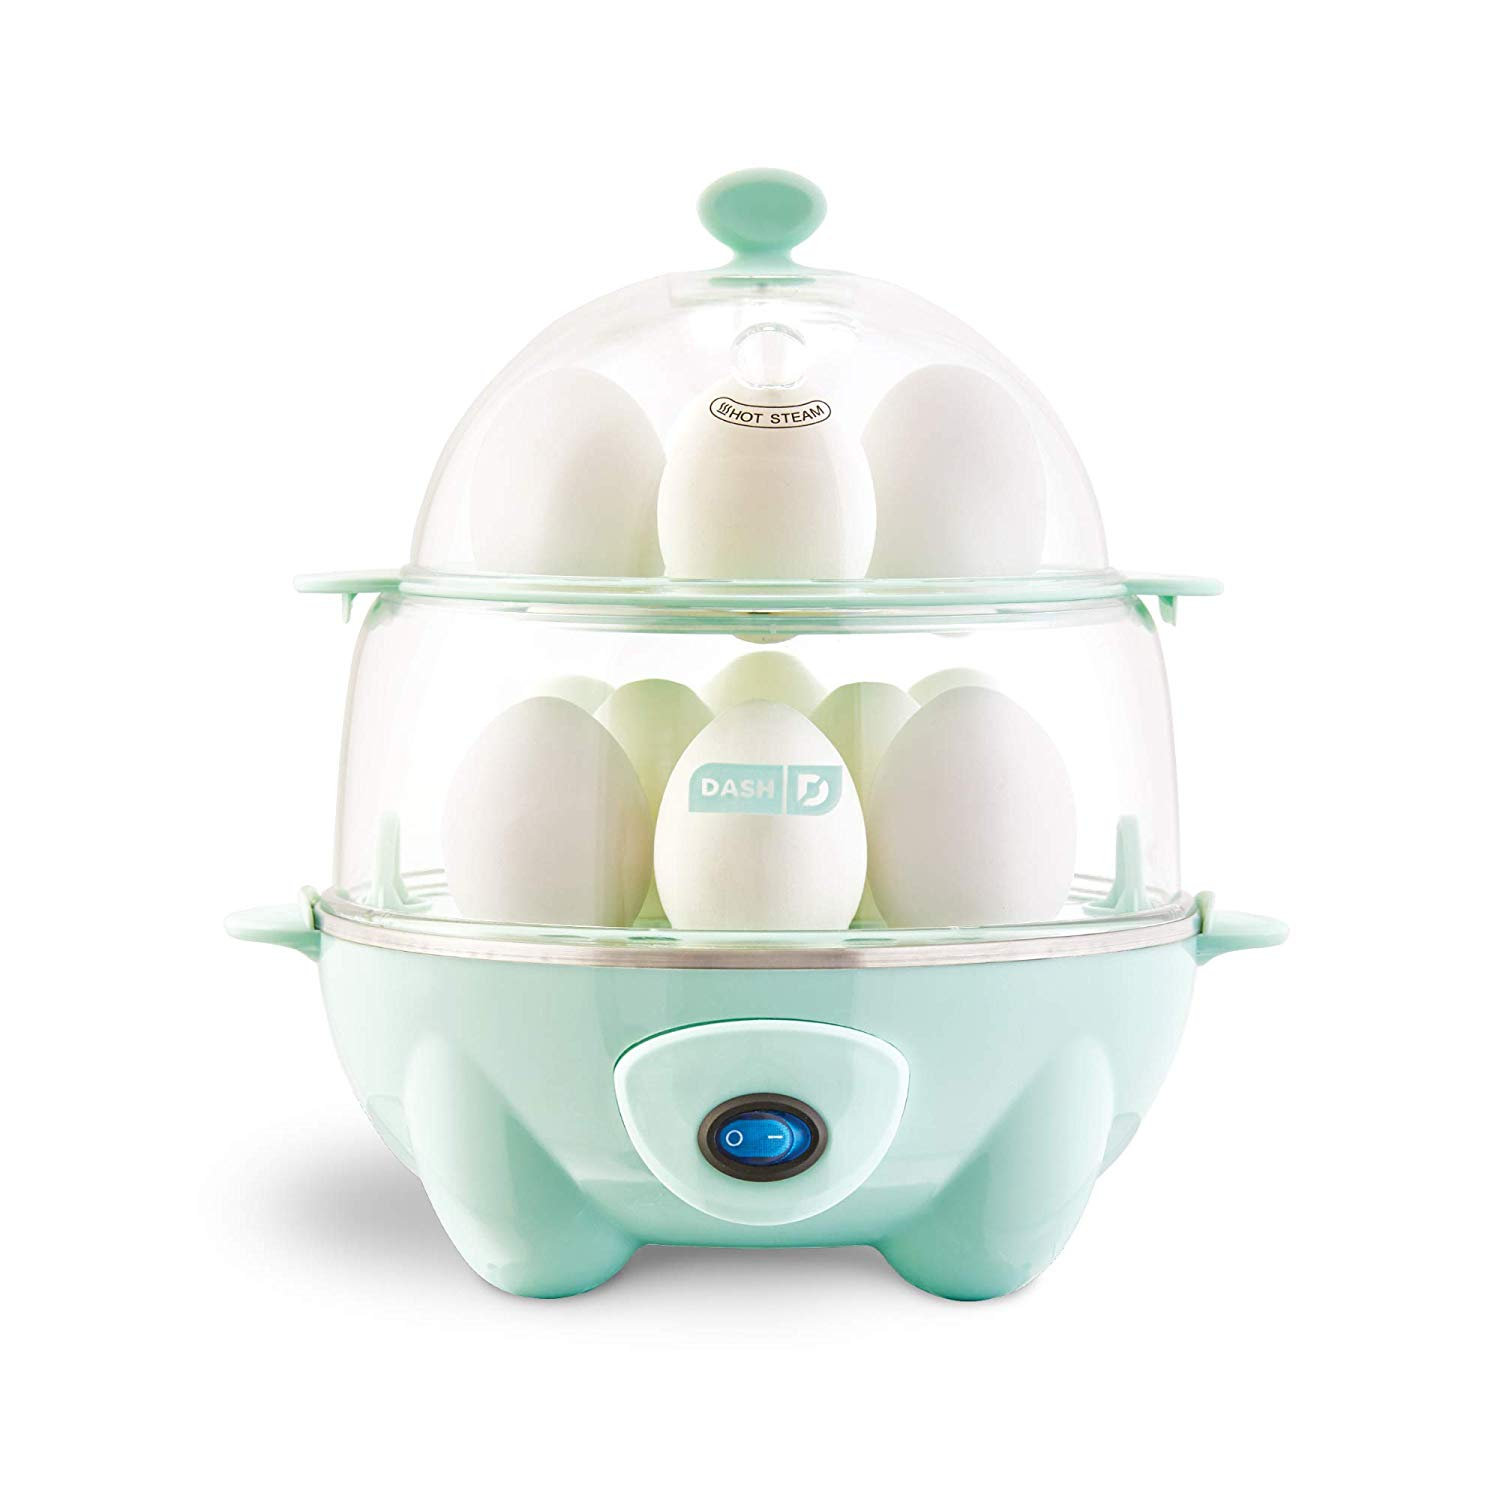 dash deluxe rapic egg cooker